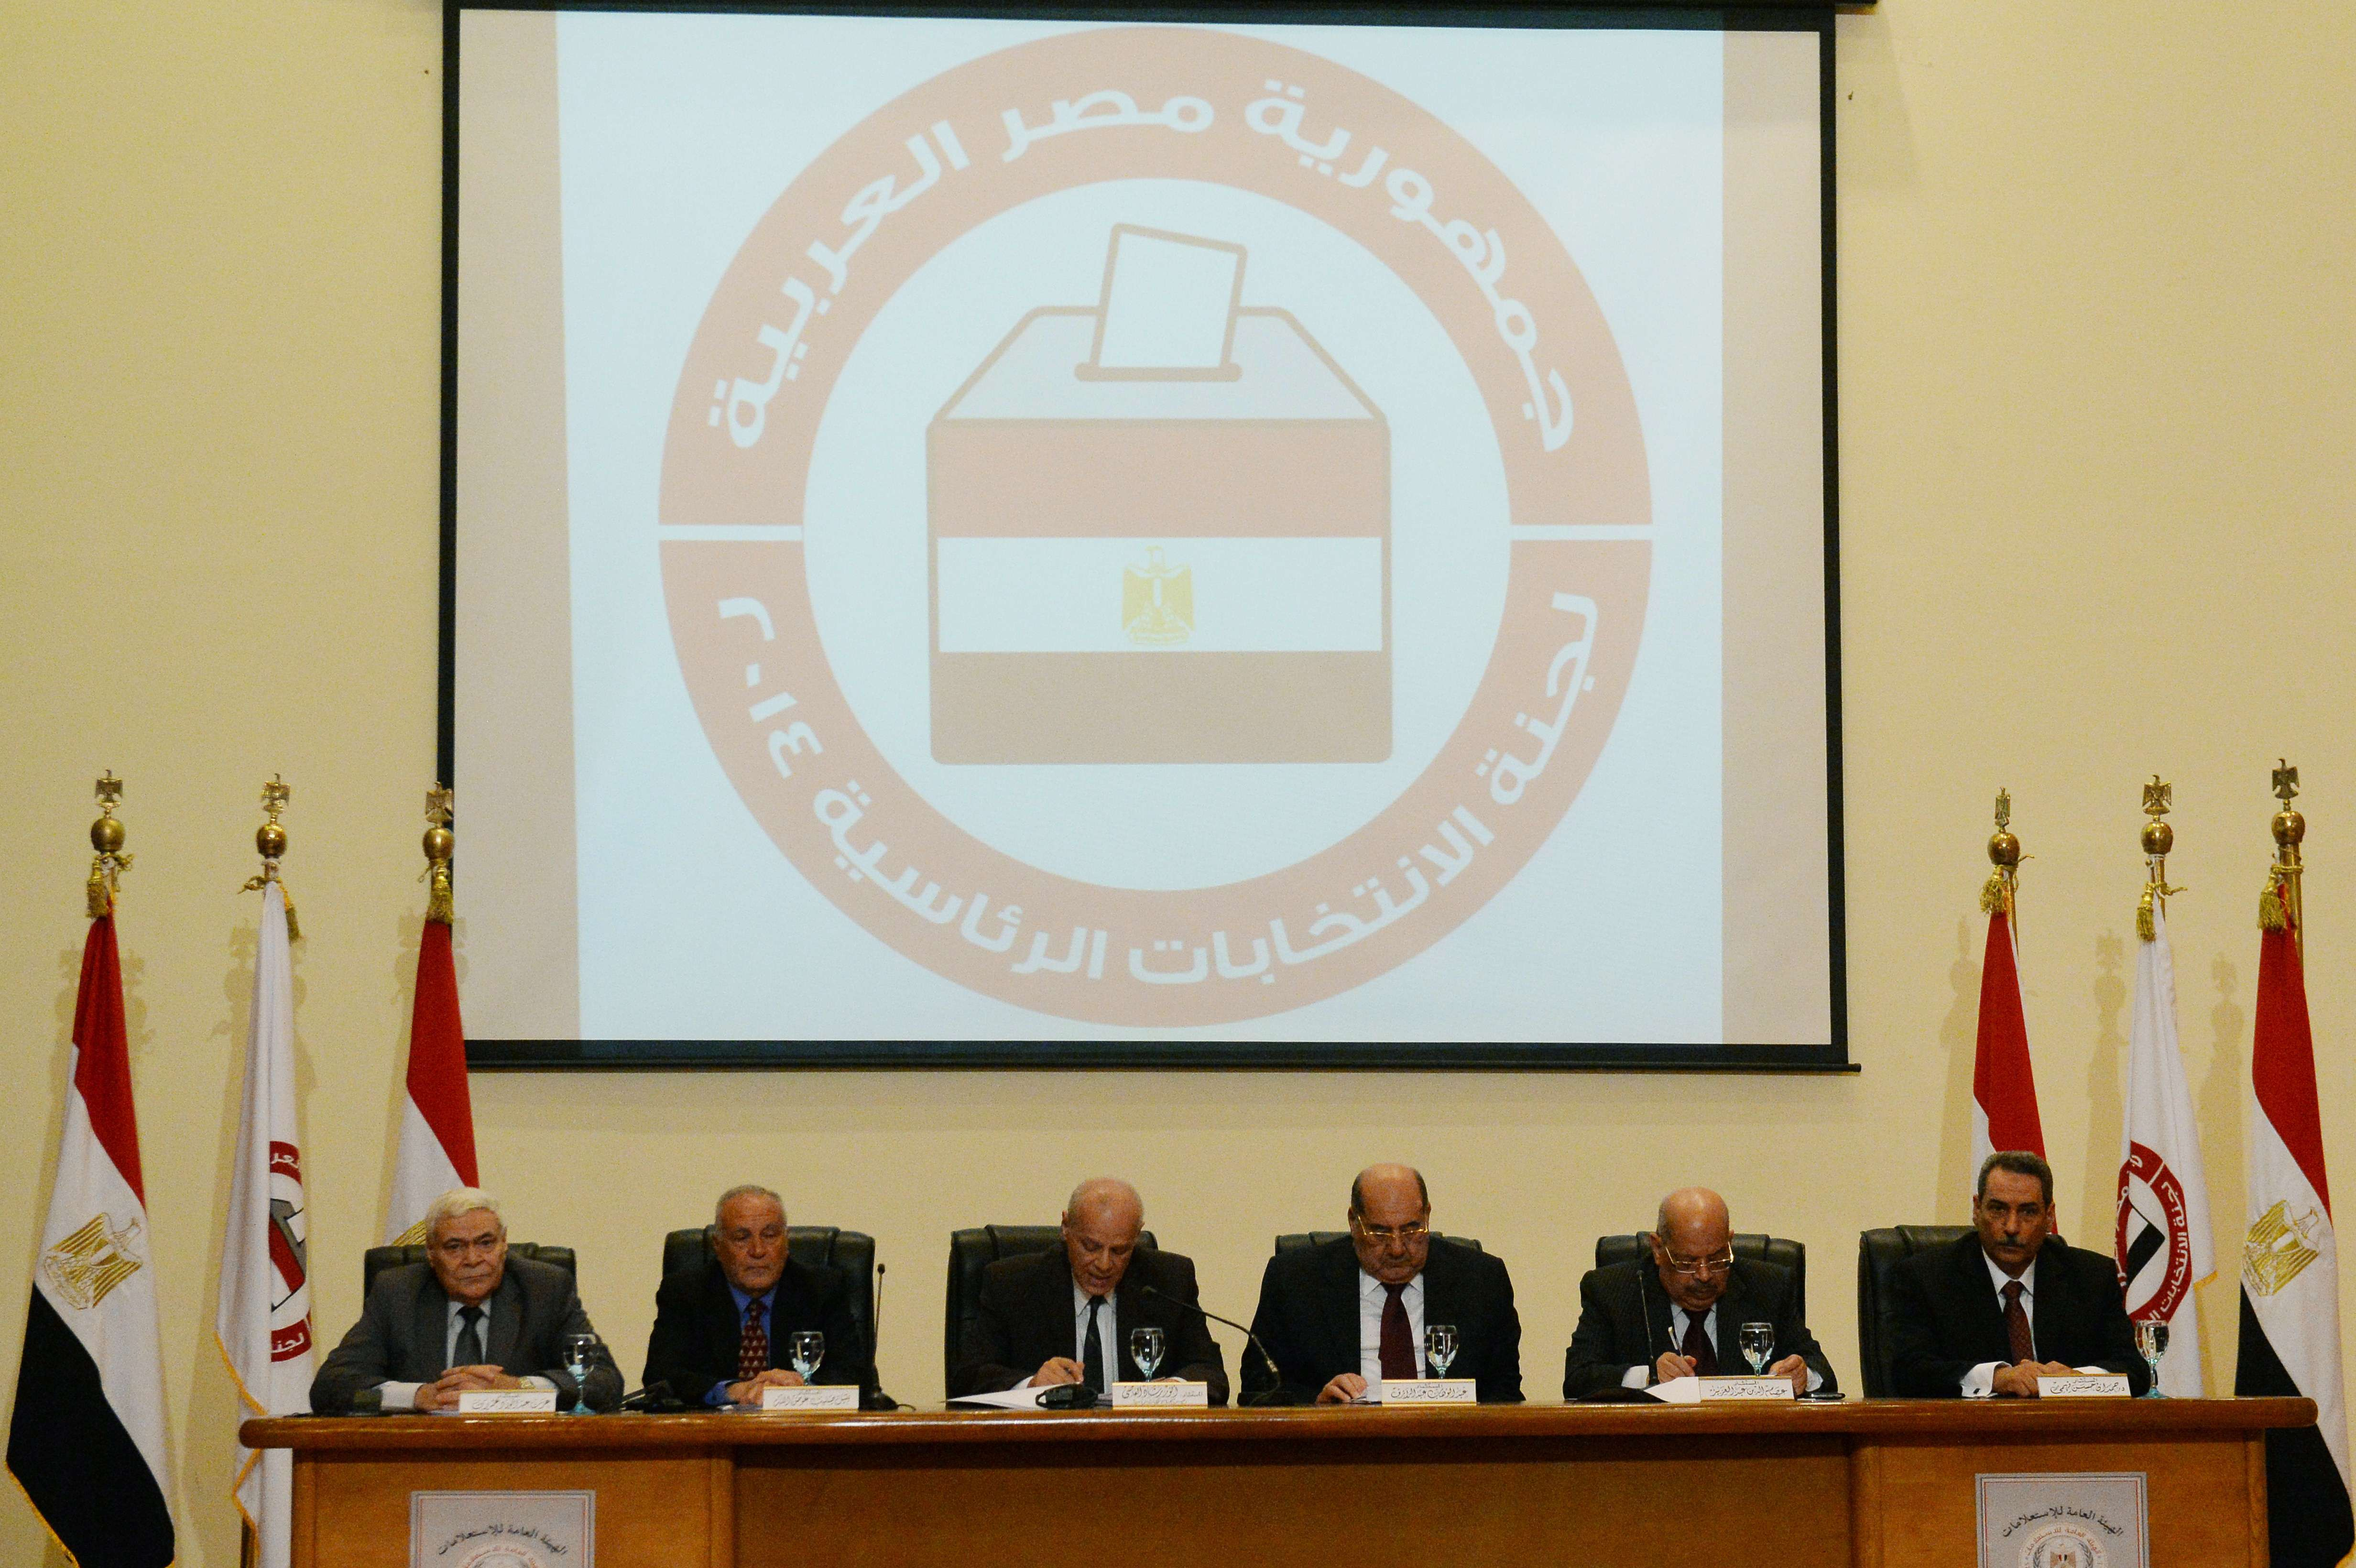 Egyptian judge, Anwar Rashad al-Assi (3rd L), head of the presidential Electoral Commission, attends a press conference in Cairo on March 30, 2014, to announce the timetable for the upcoming presidential election. Egypt is to hold a presidential election on May 26-27, 10 months after the army turfed out Islamist leader Mohamed Morsi from the presidency, the electoral commission announced. The election would go into a second round on June 16-17 if there is no outright winner.  (AFP PHOTO / KHALED DESOUKI)